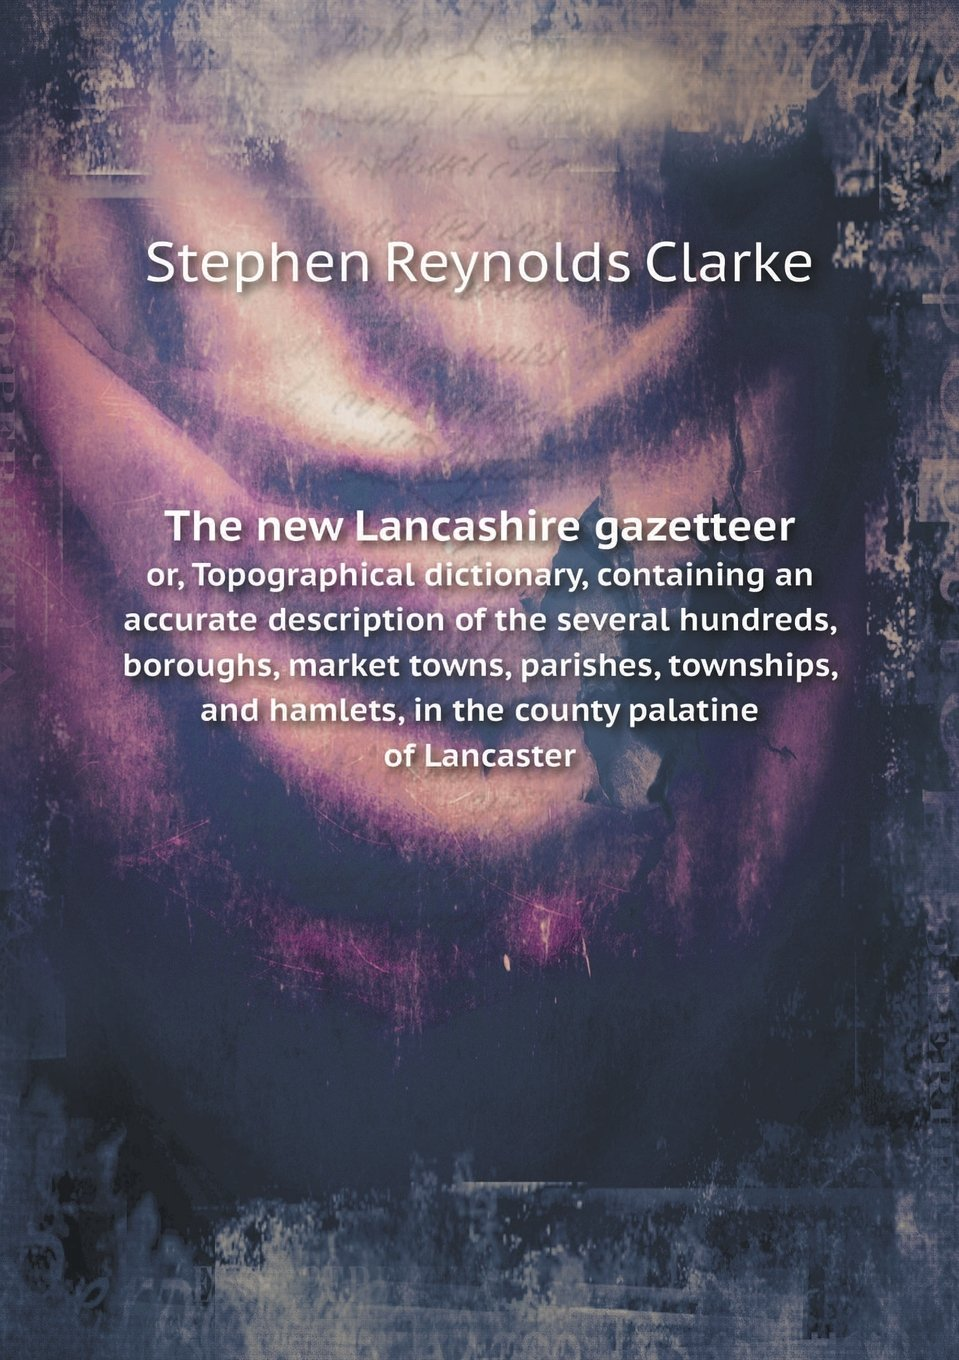 Download The new Lancashire gazetteer or, Topographical dictionary, containing an accurate description of the several hundreds, boroughs, market towns, ... hamlets, in the county palatine of Lancaster ebook